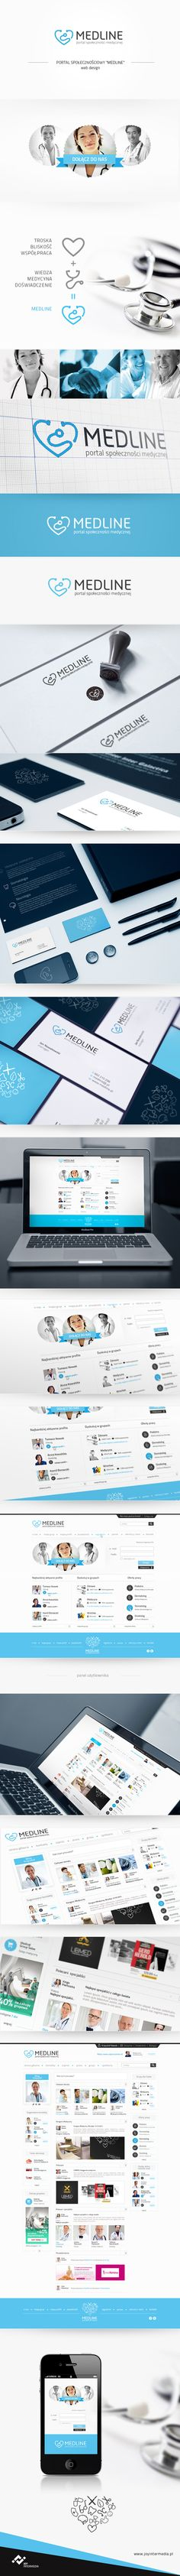 Medline by Milena Włodarczyk, via Behance